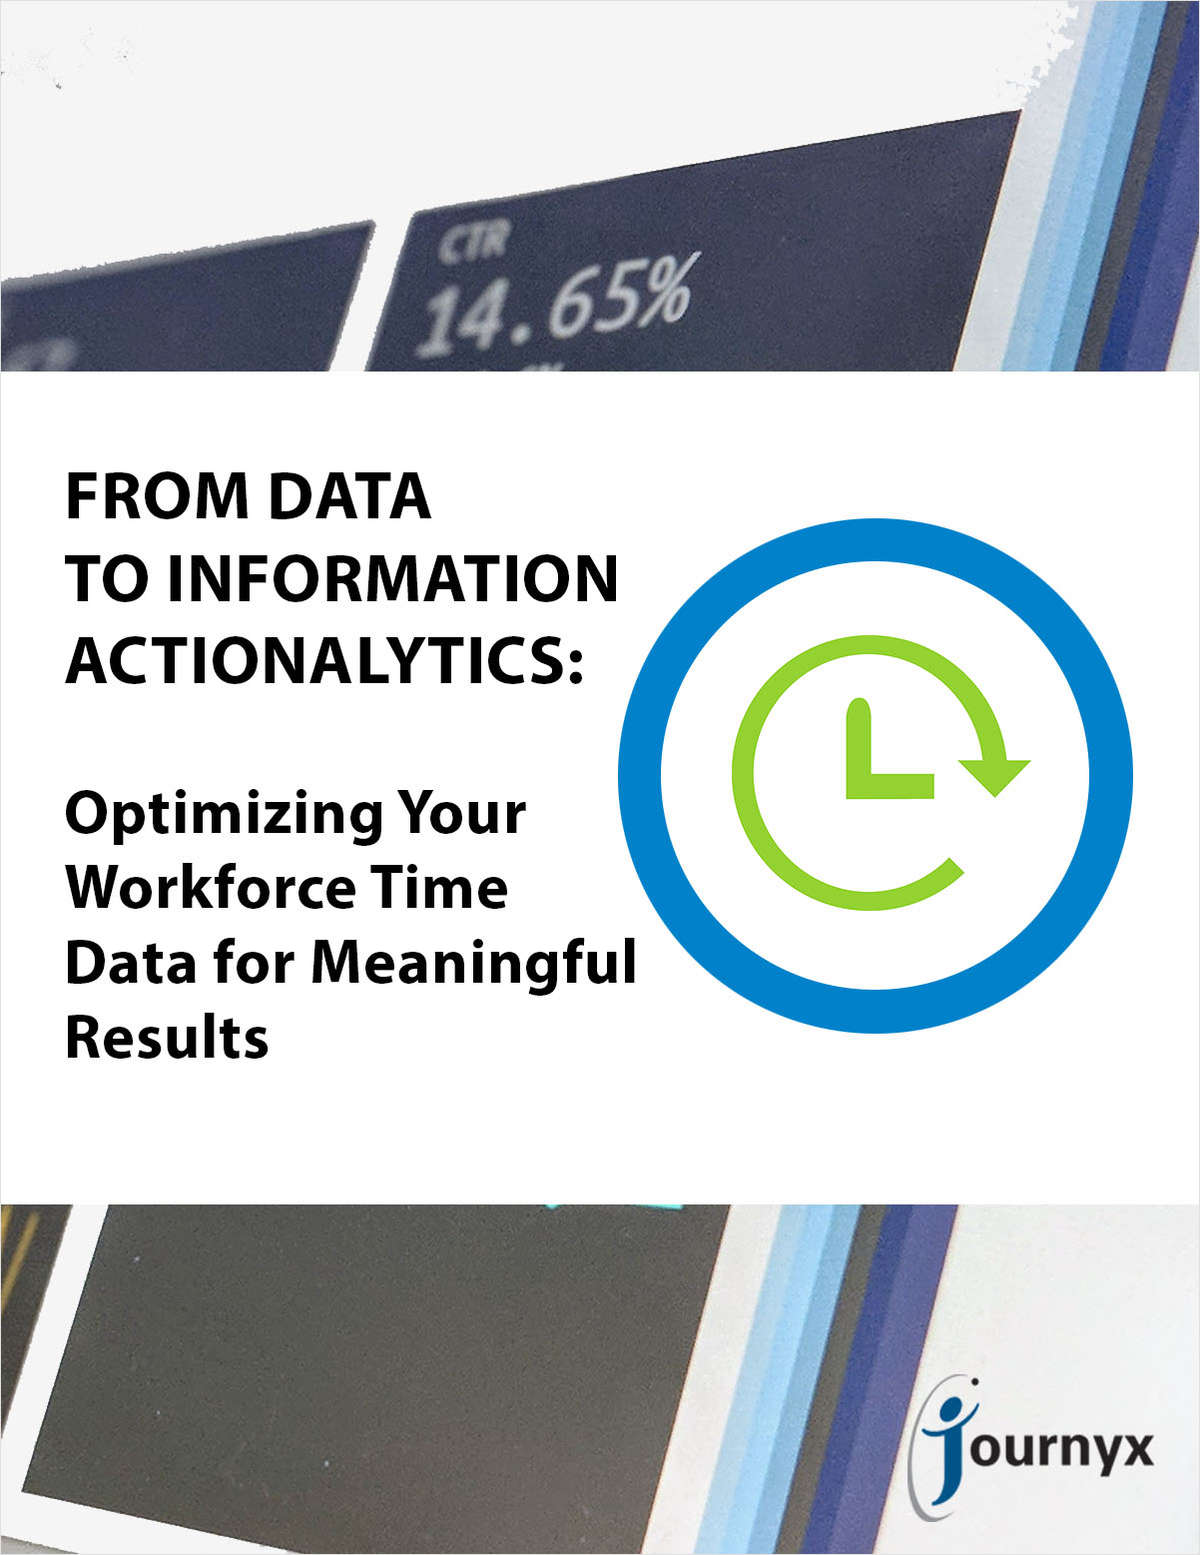 From Data to Information to Actionalytics: Optimizing Your Workforce Time Data for Meaningful Results